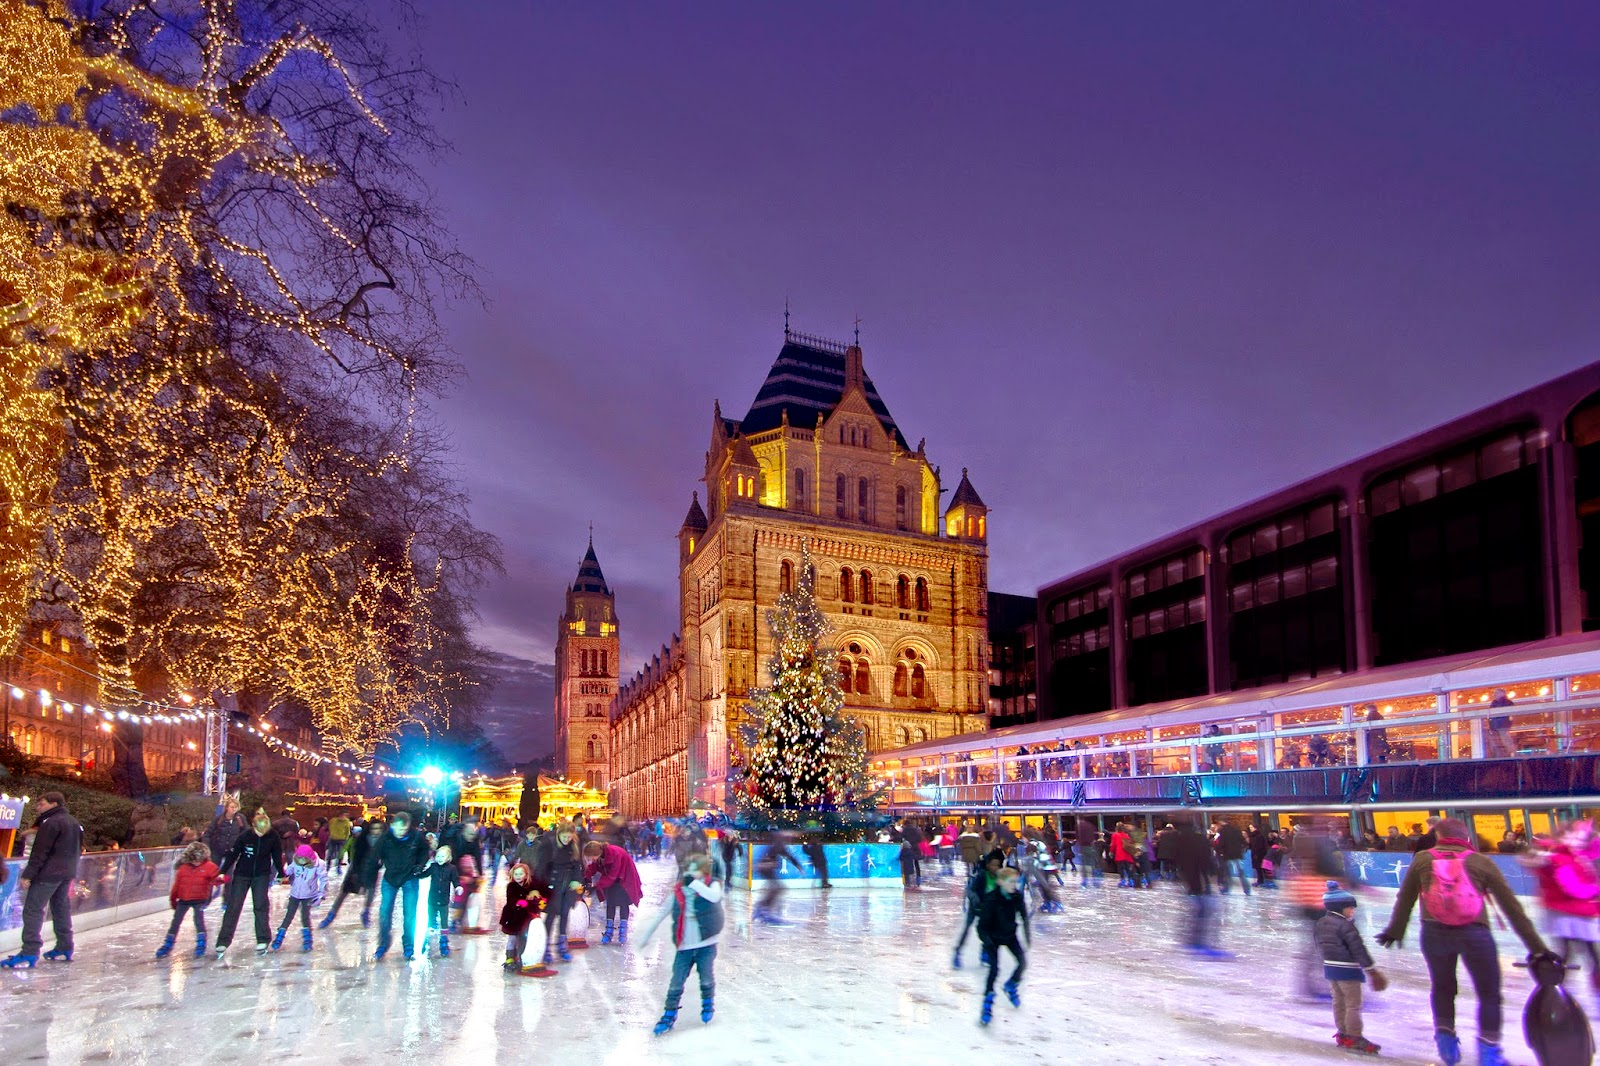 Ice rink at the National History Museum